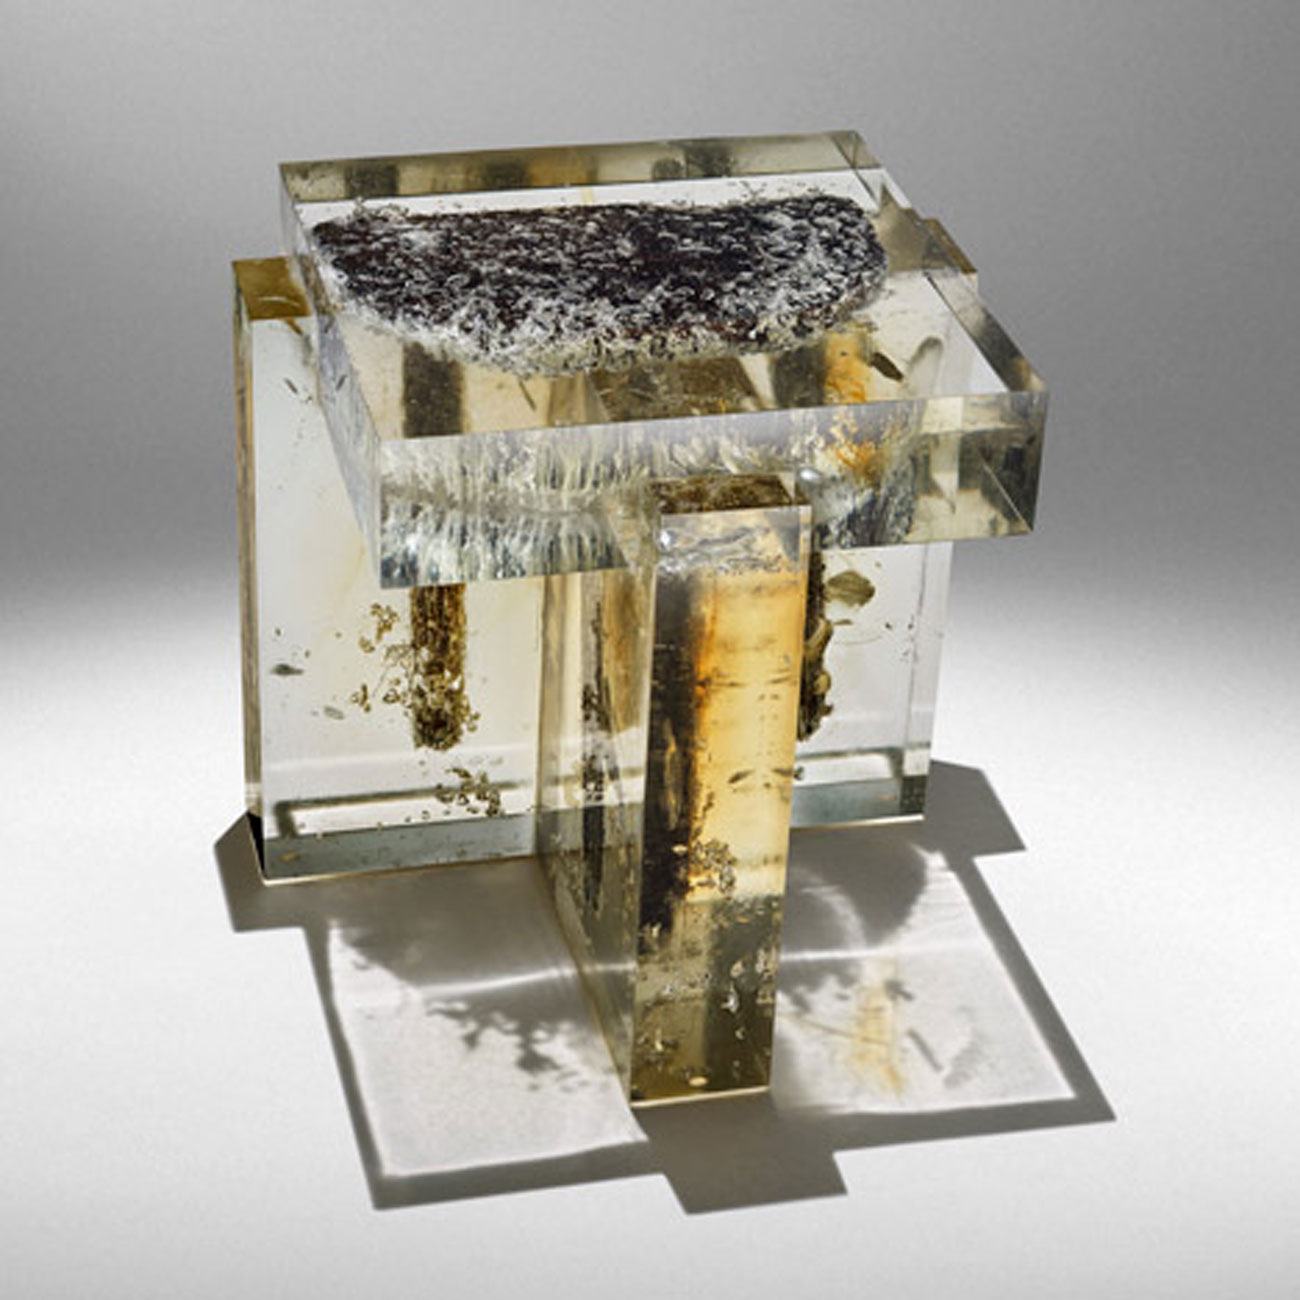 Nucleo-with-Ammann-Gallery-for-Collective-Design-Studio-Souvenir-of-the-Last-Century-Stool